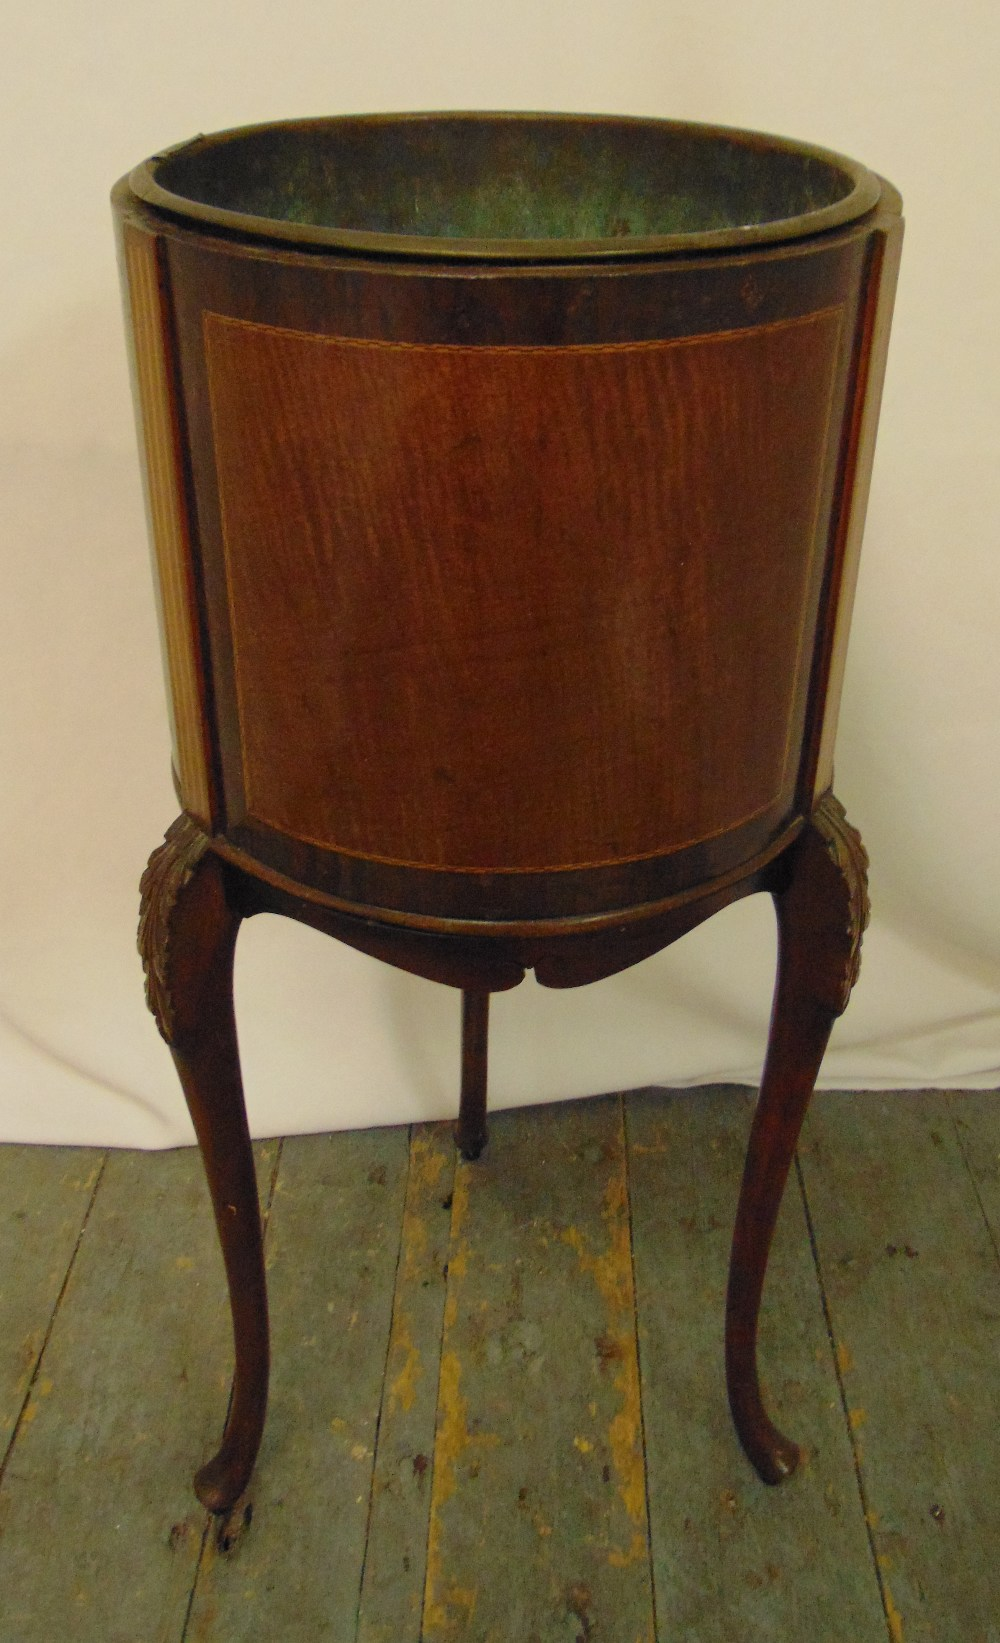 An Edwardian mahogany and satinwood wine cooler of cylindrical form with detachable copper liner, on